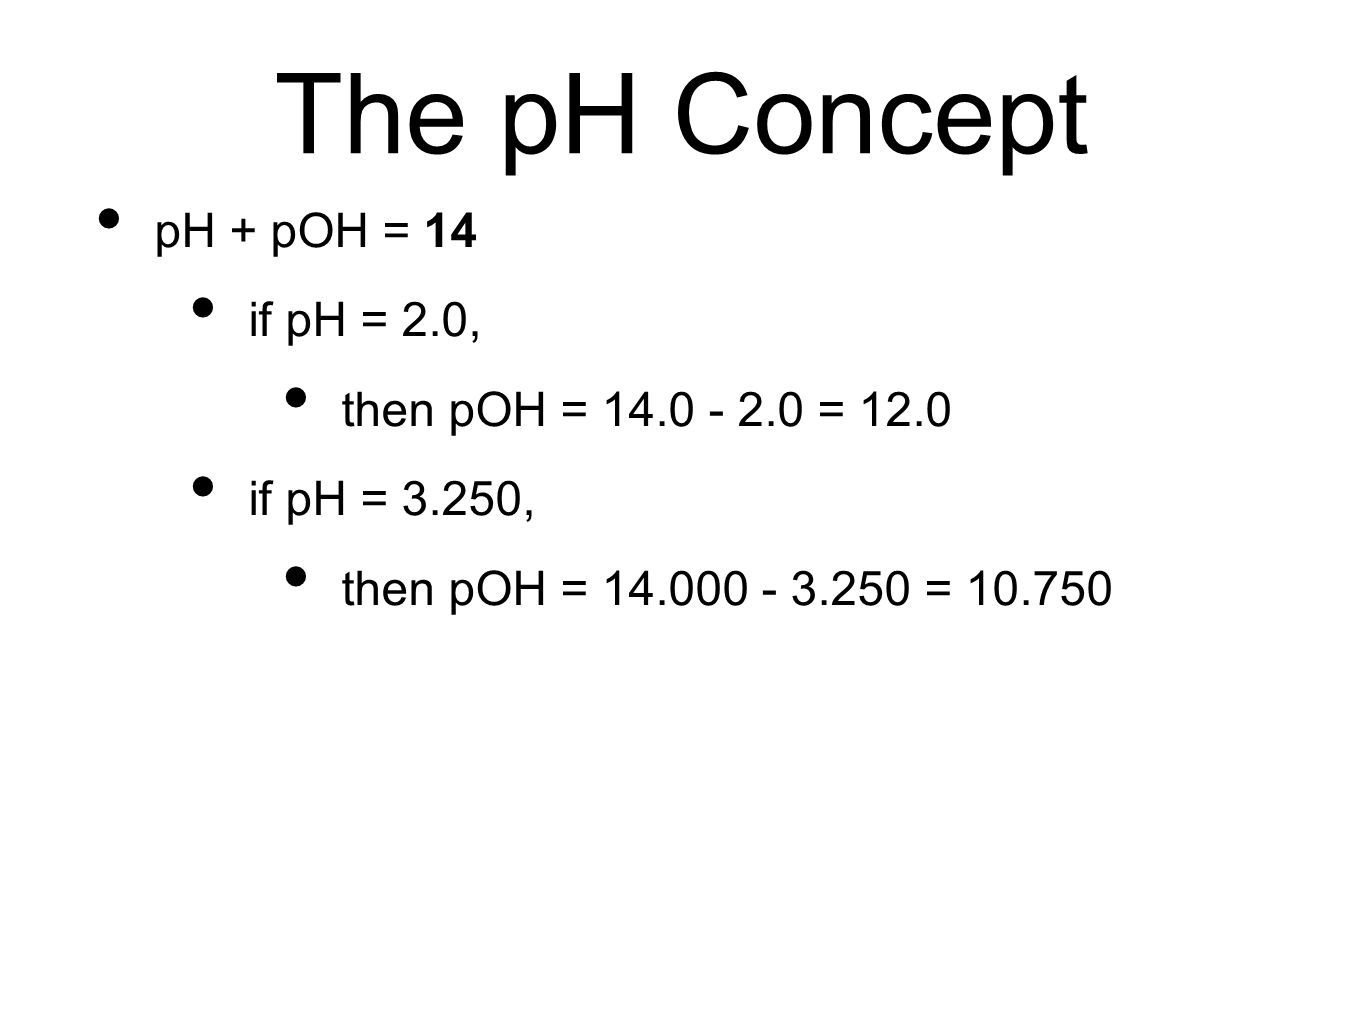 The pH Concept pH + pOH = 14 if pH = 2.0, then pOH = 14.0 - 2.0 = 12.0 if pH = 3.250, then pOH = 14.000 - 3.250 = 10.750